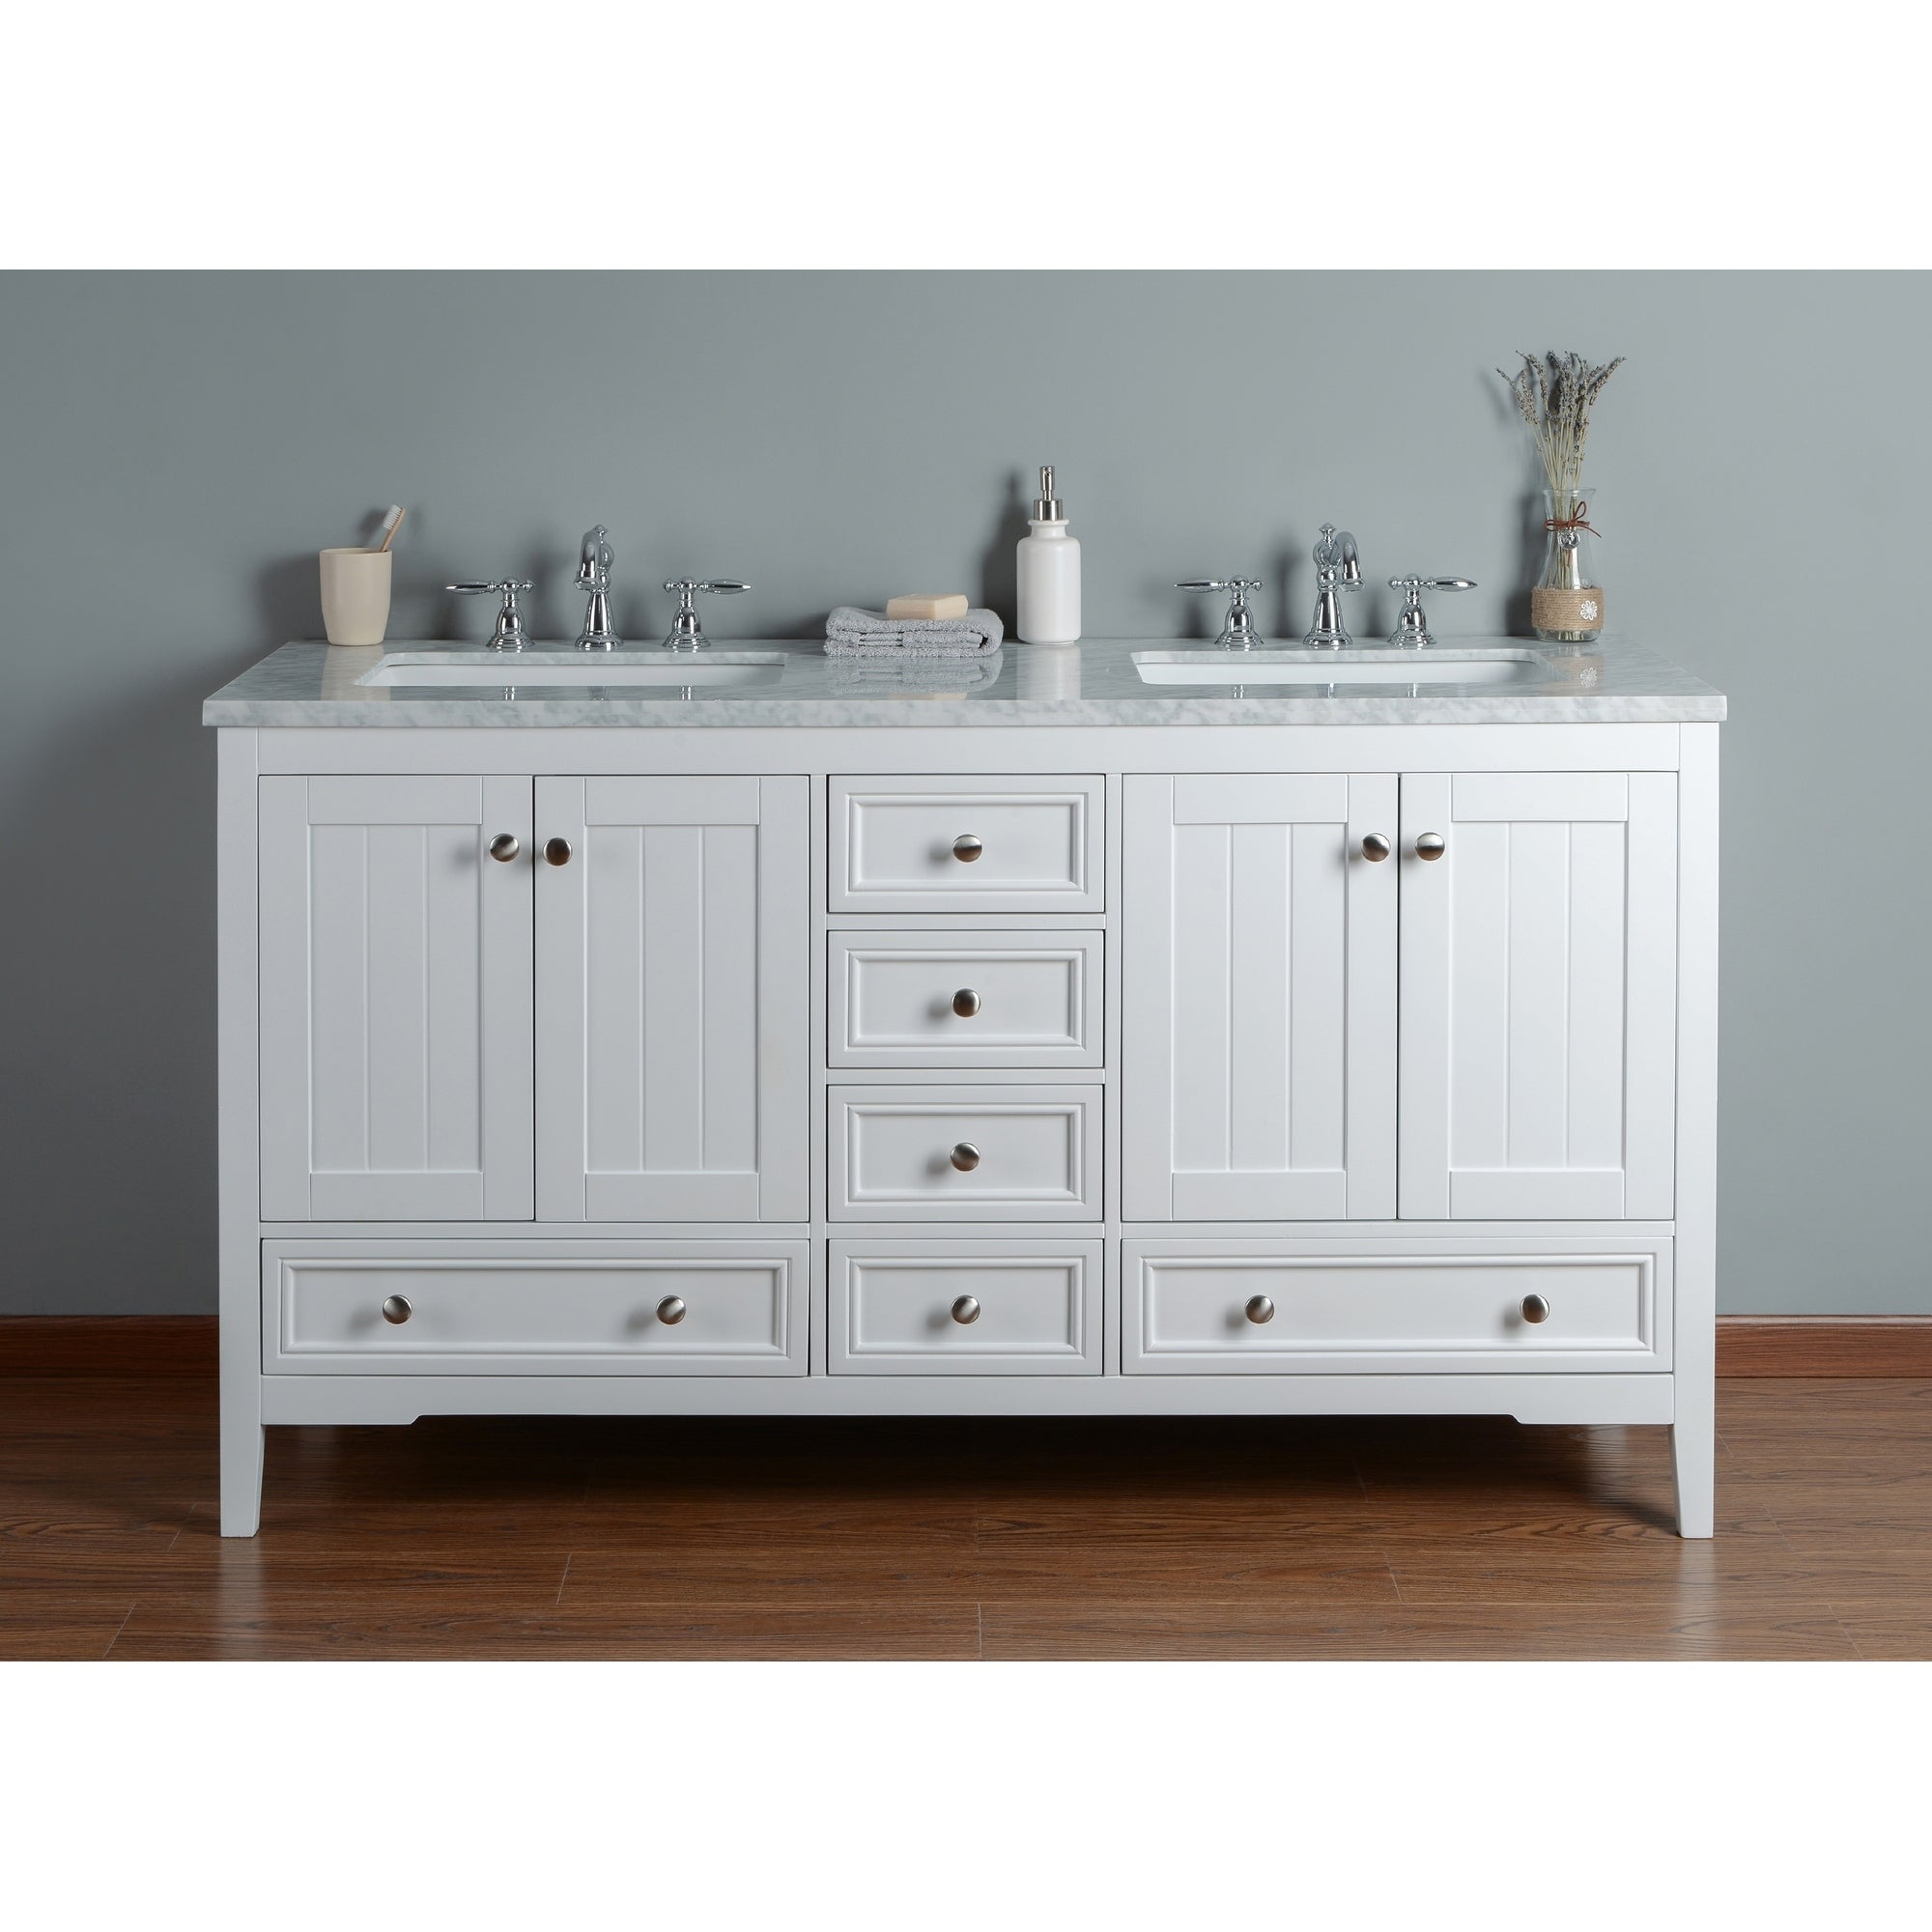 Shop Stufurhome New Yorker 60 Inches White Double Sink Bathroom